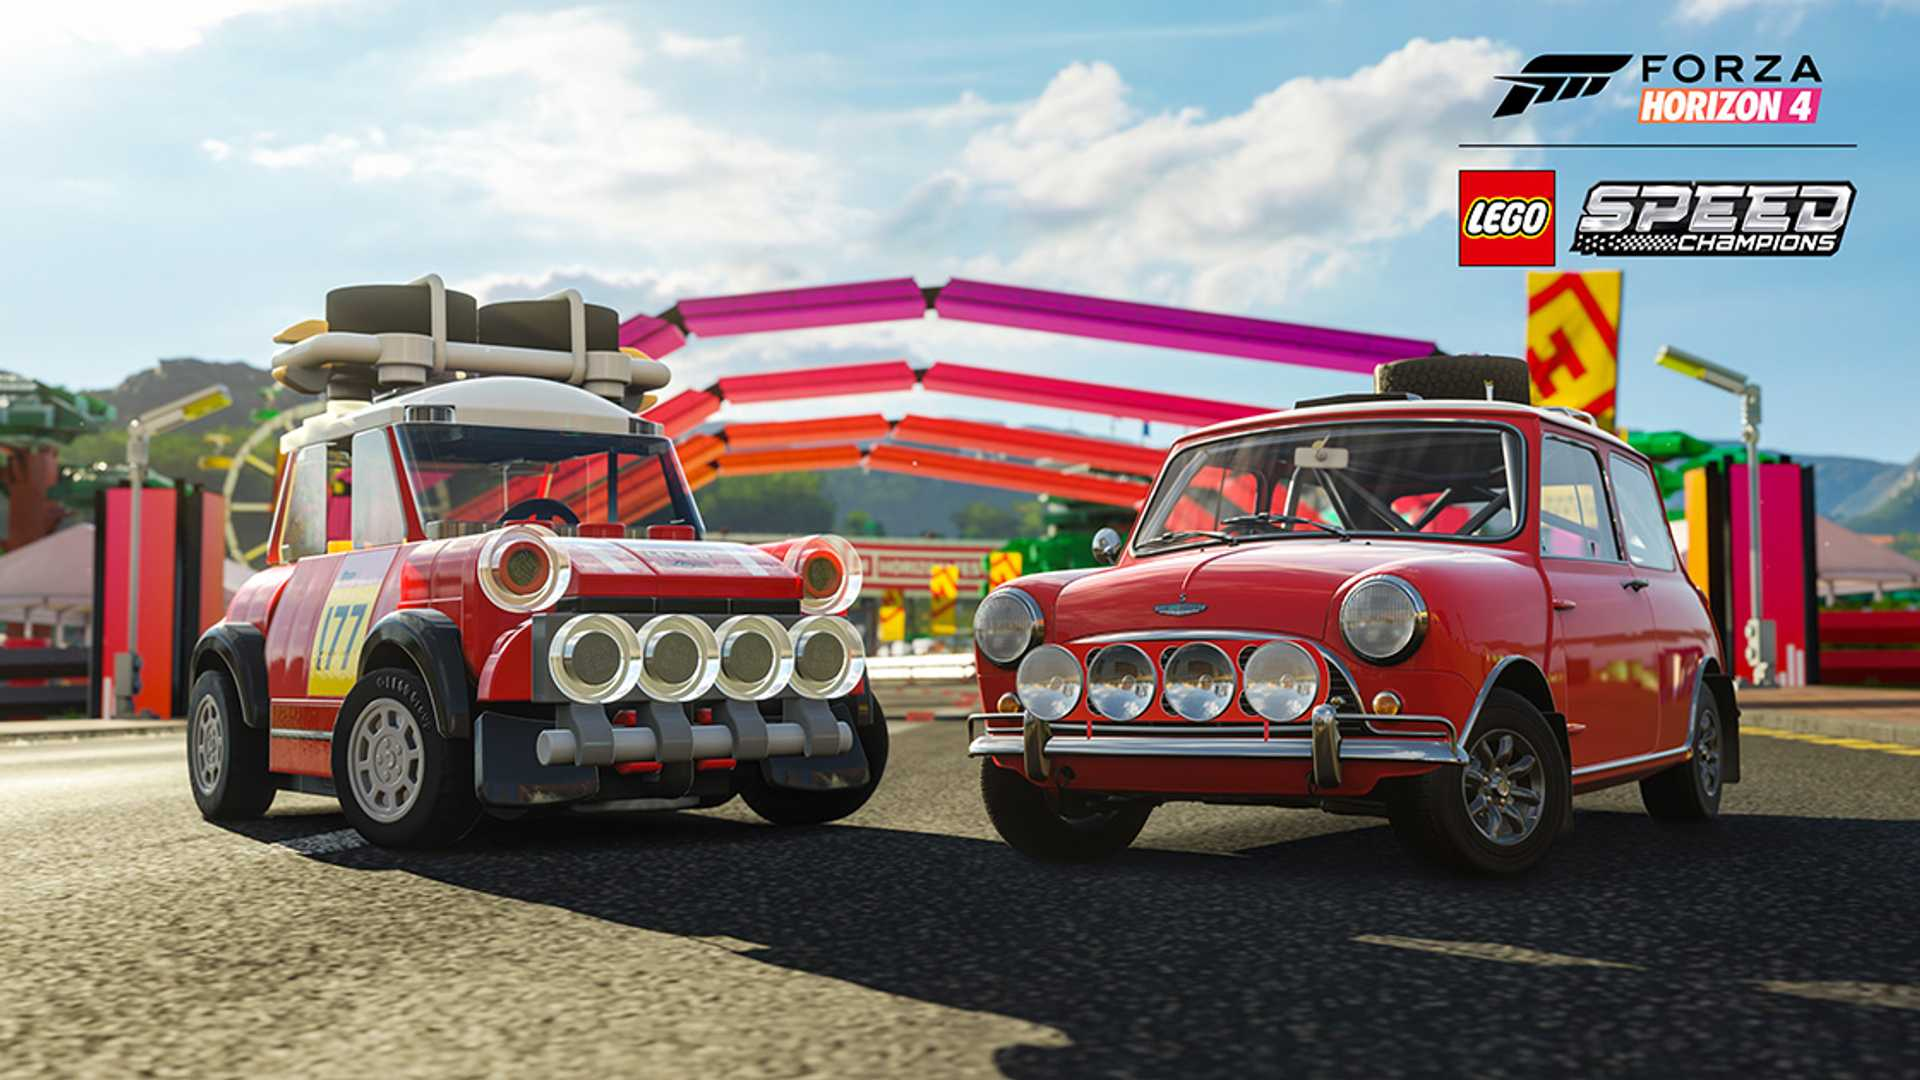 forza-horizon-4-lego-speed-champions-4